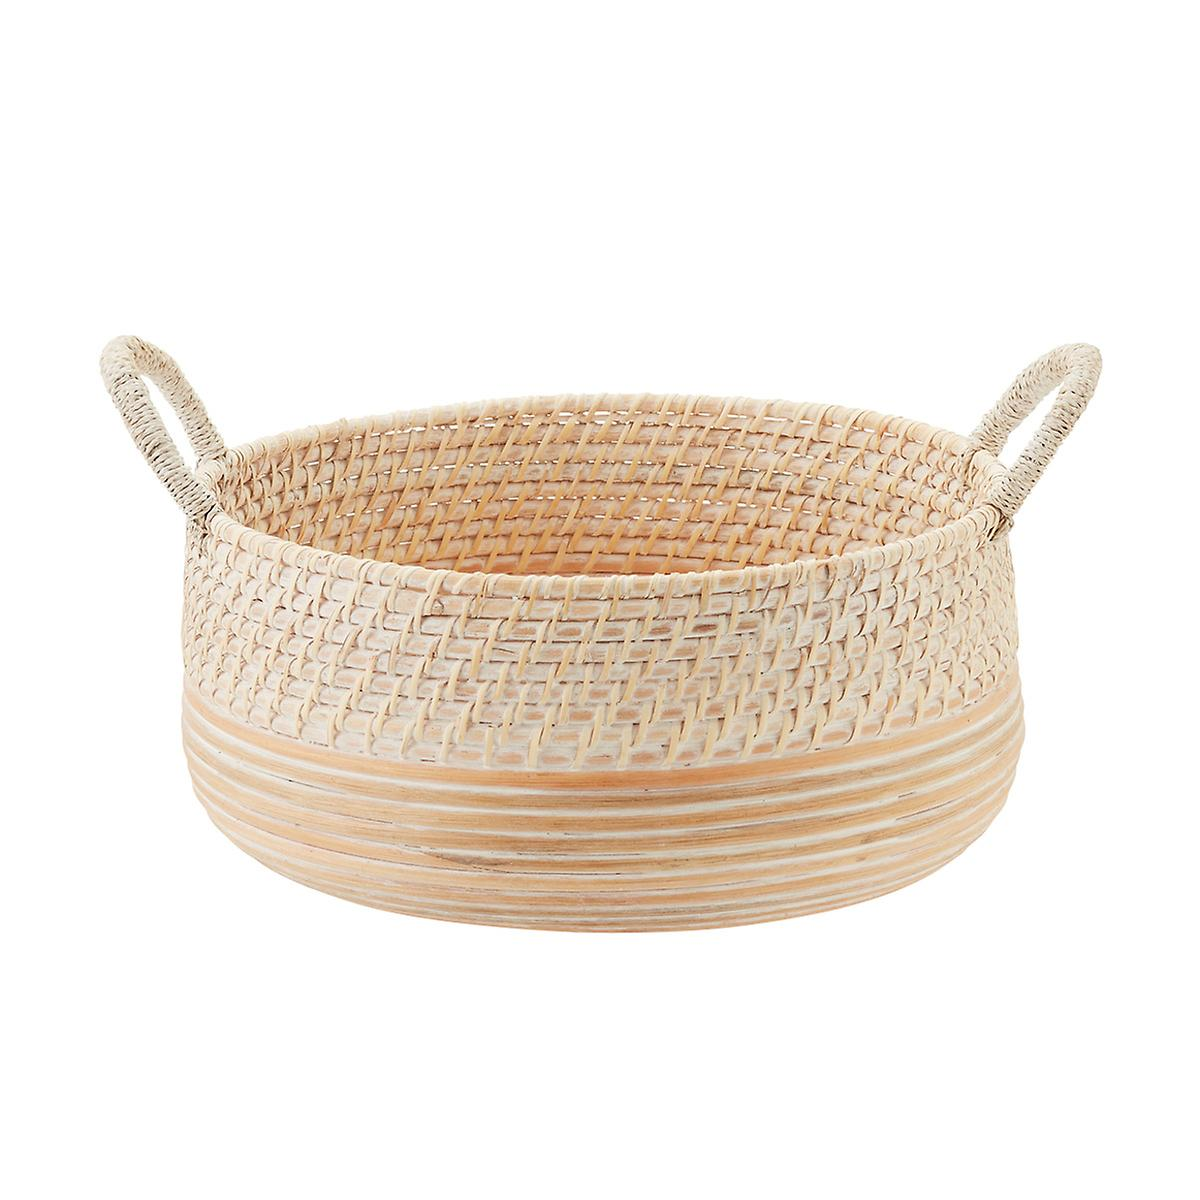 Whitewashed Round Rattan Basket with Handles